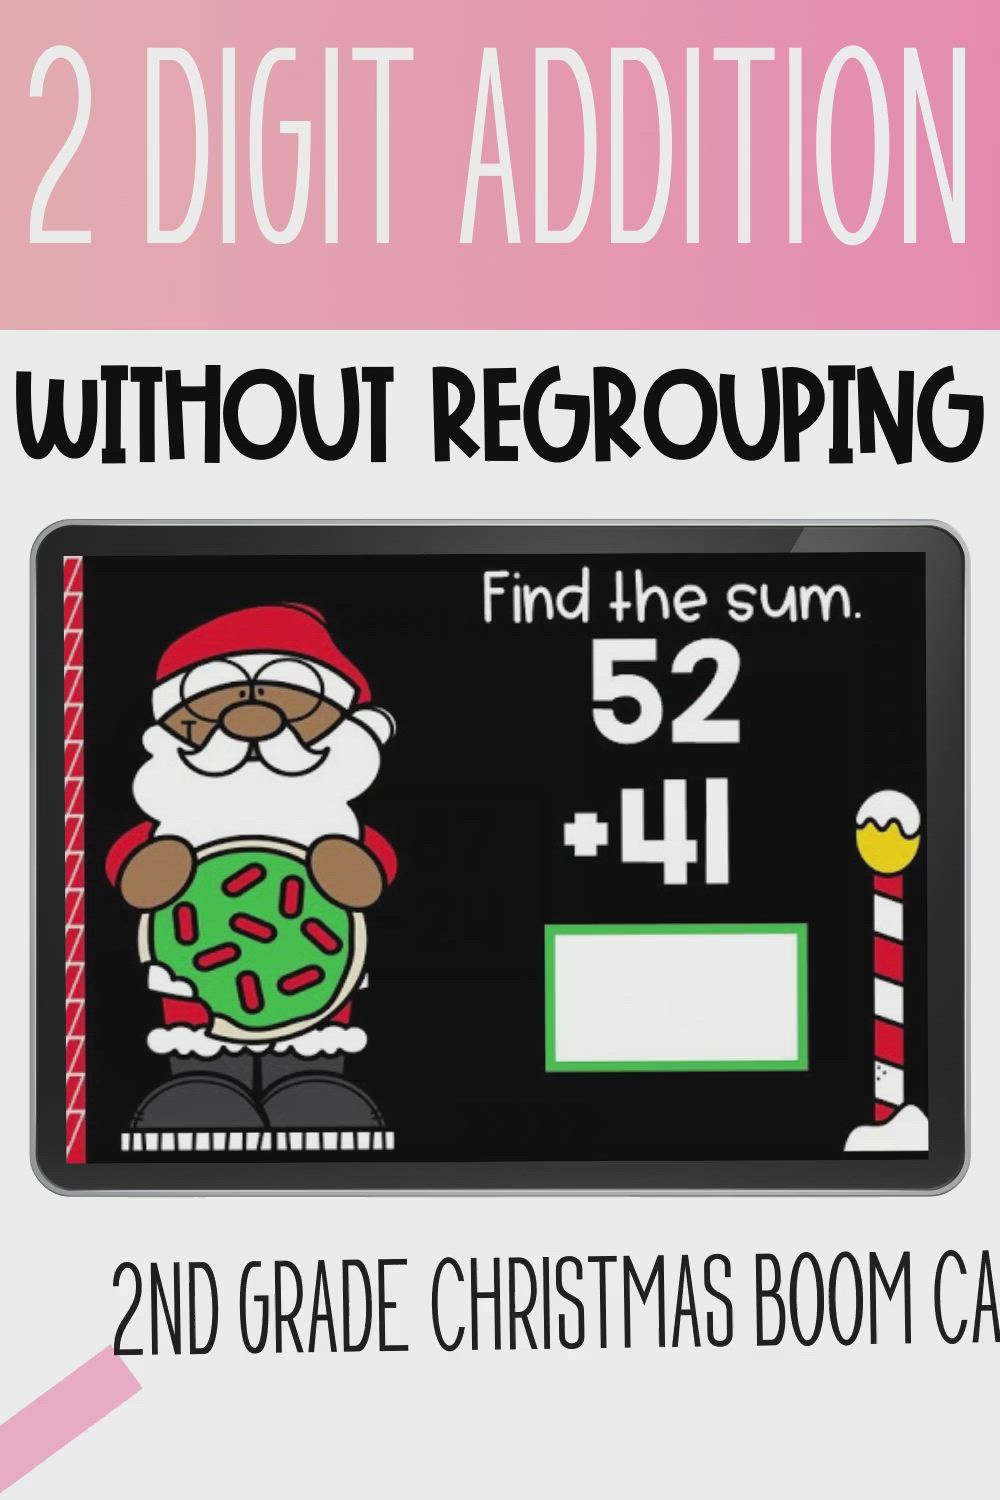 2nd Grade 2 Digit Addition Without Regrouping Winter Christmas Boom Cards Video Video 2nd Grade Early Finishers Activities Regrouping Addition without regrouping video